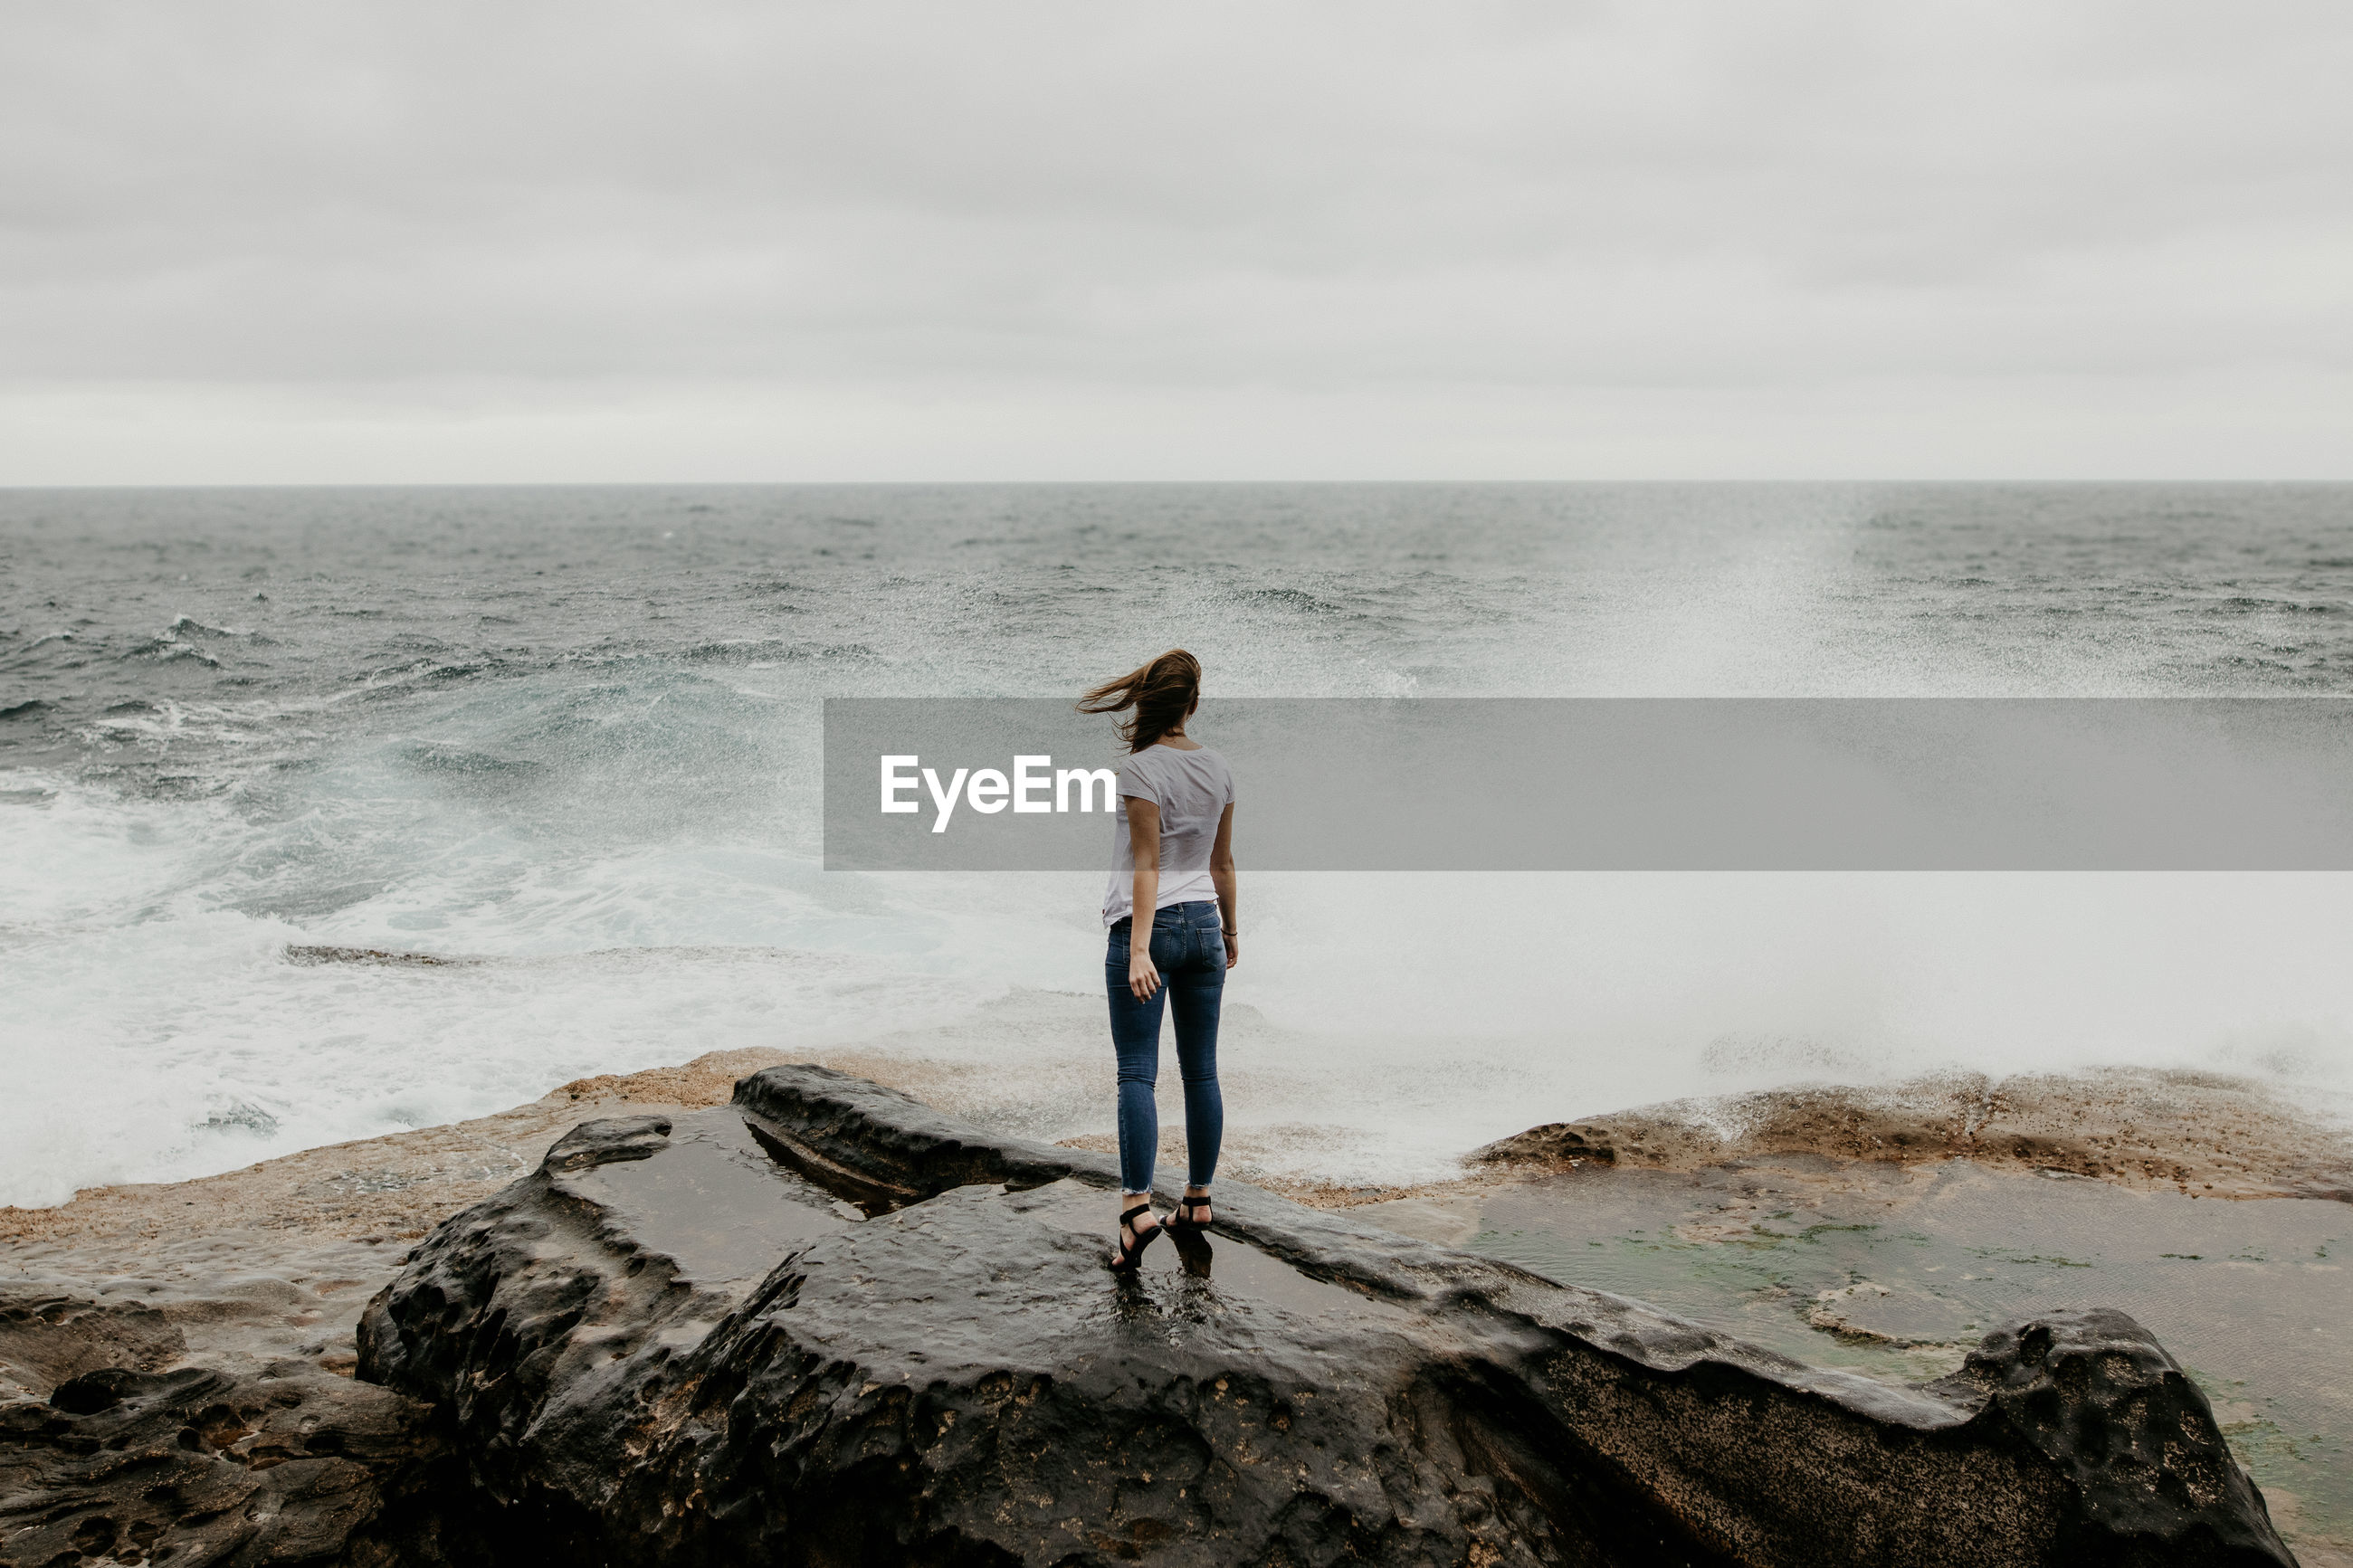 Rear view of woman standing on rock at beach